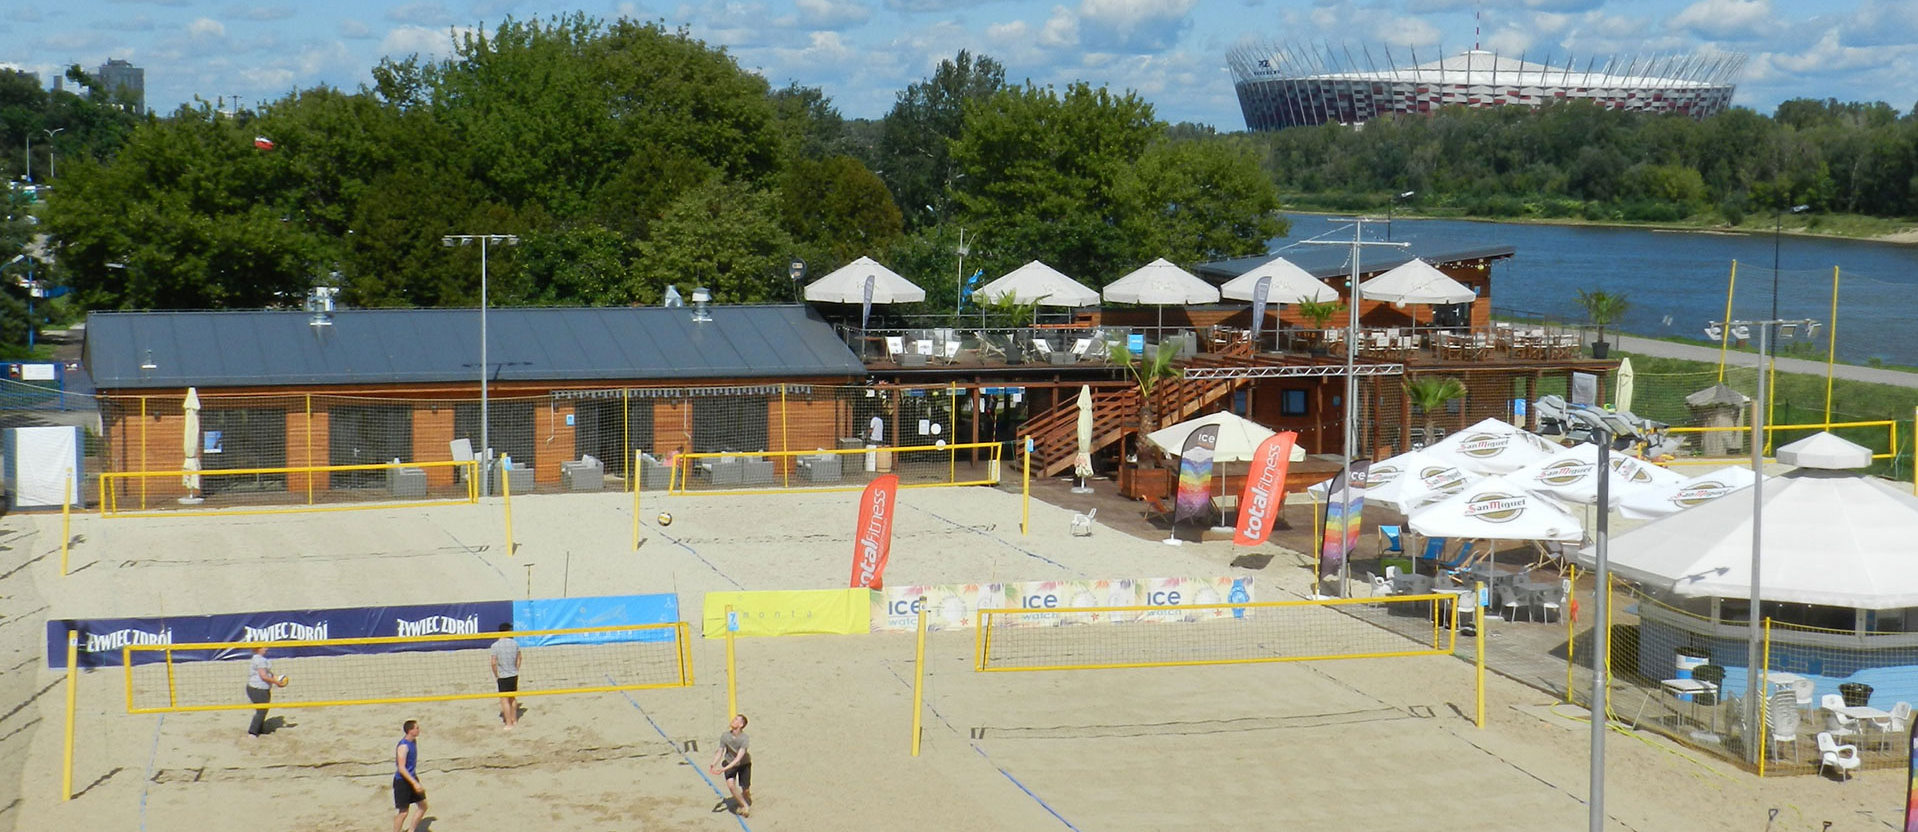 Monta_Beach_Volley_Club_warszawa